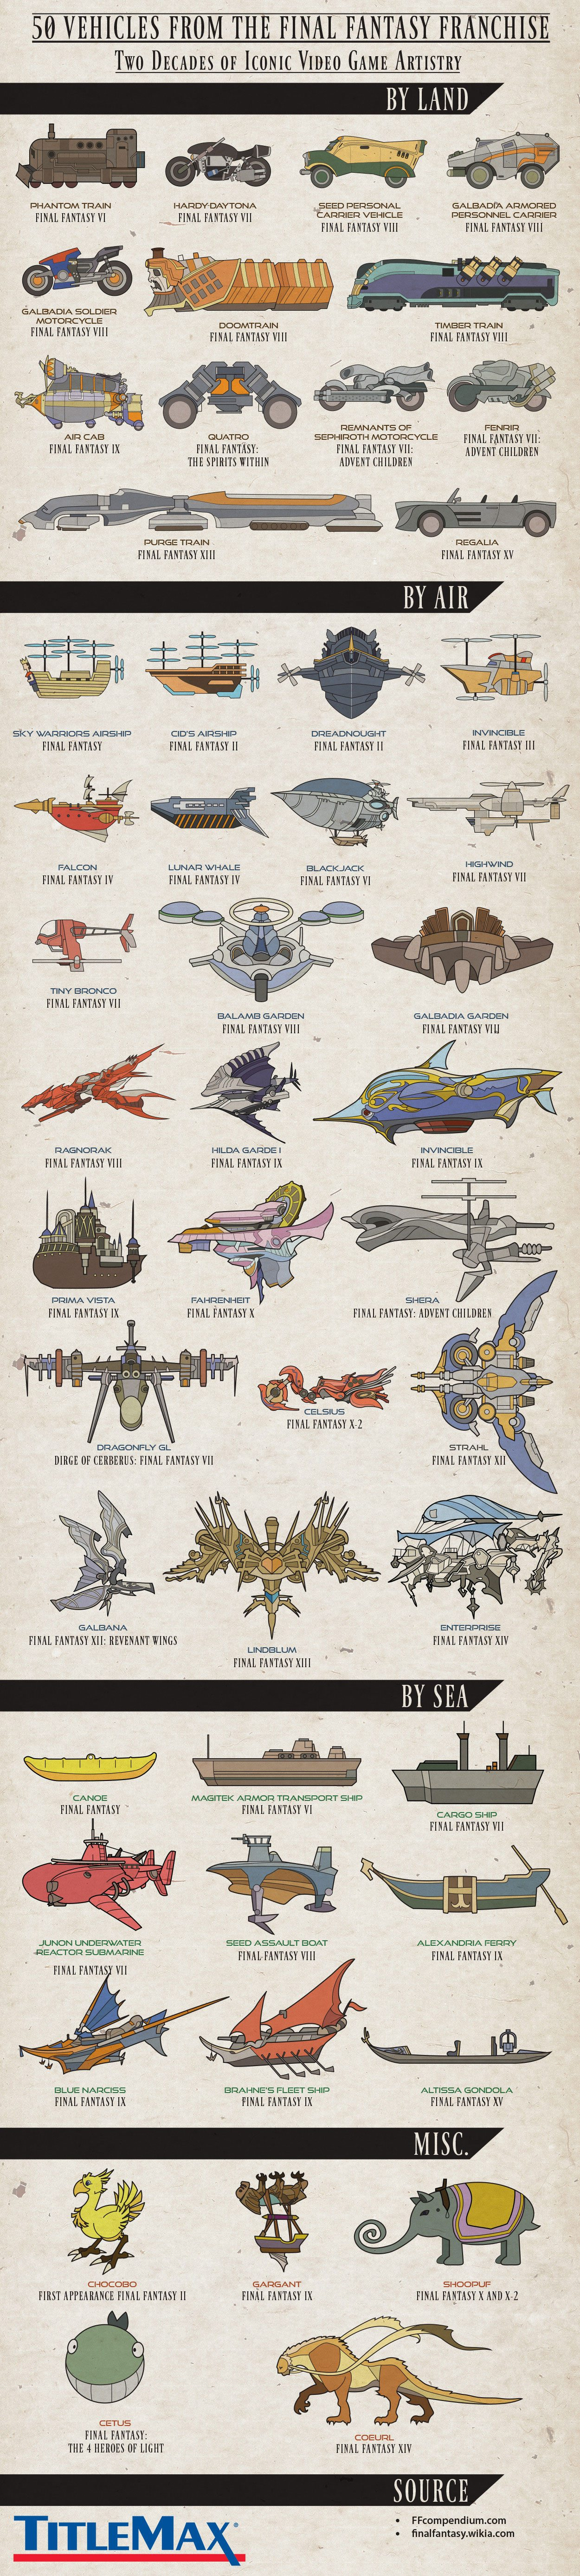 Final Fantasy Vehicles